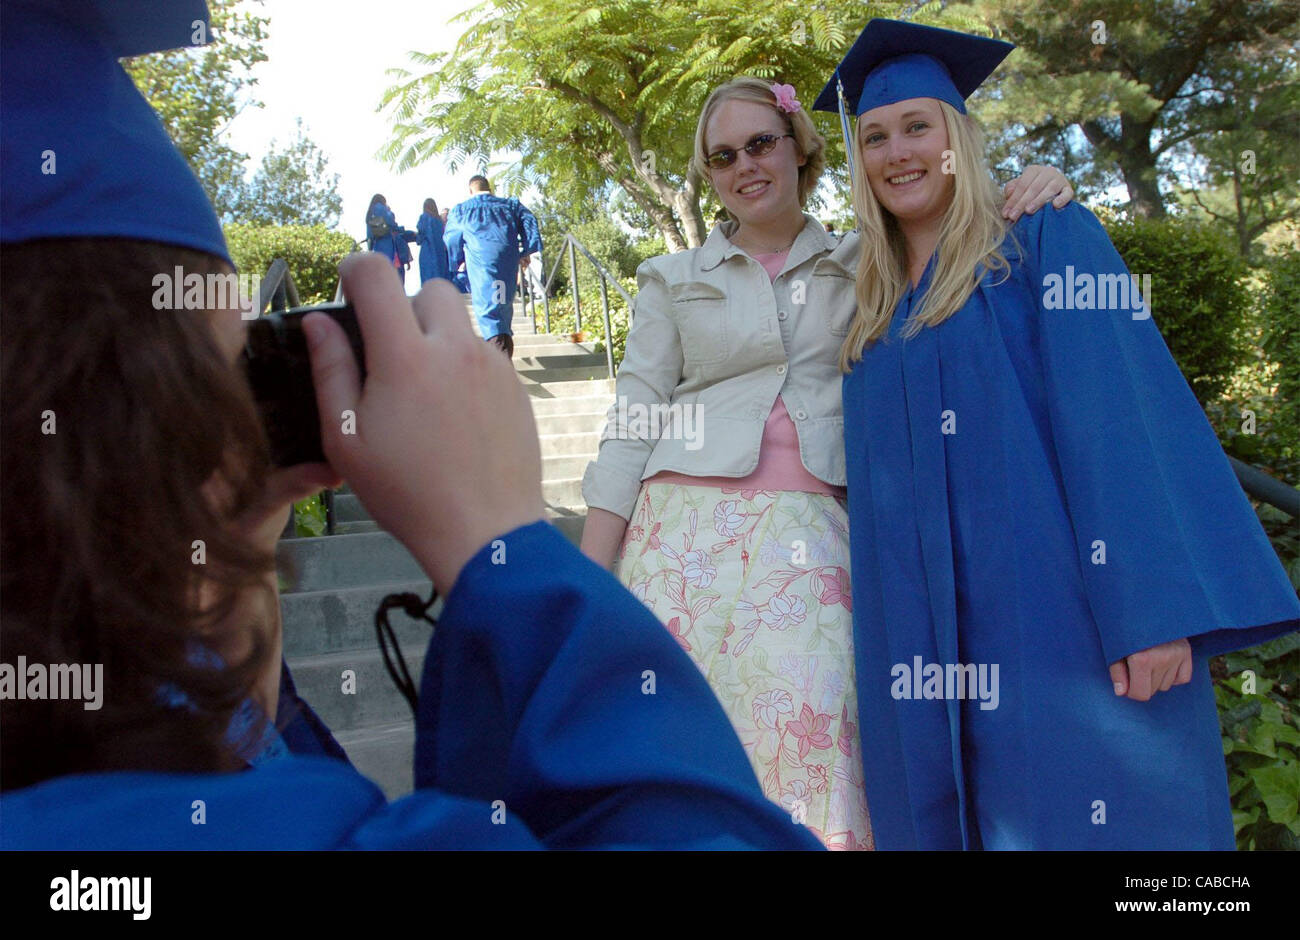 (l to r) Andrea Williams takes a photo of Katy Mueller  and Brianna Jorgensen at the Foothill High graduation ceremony - Stock Image